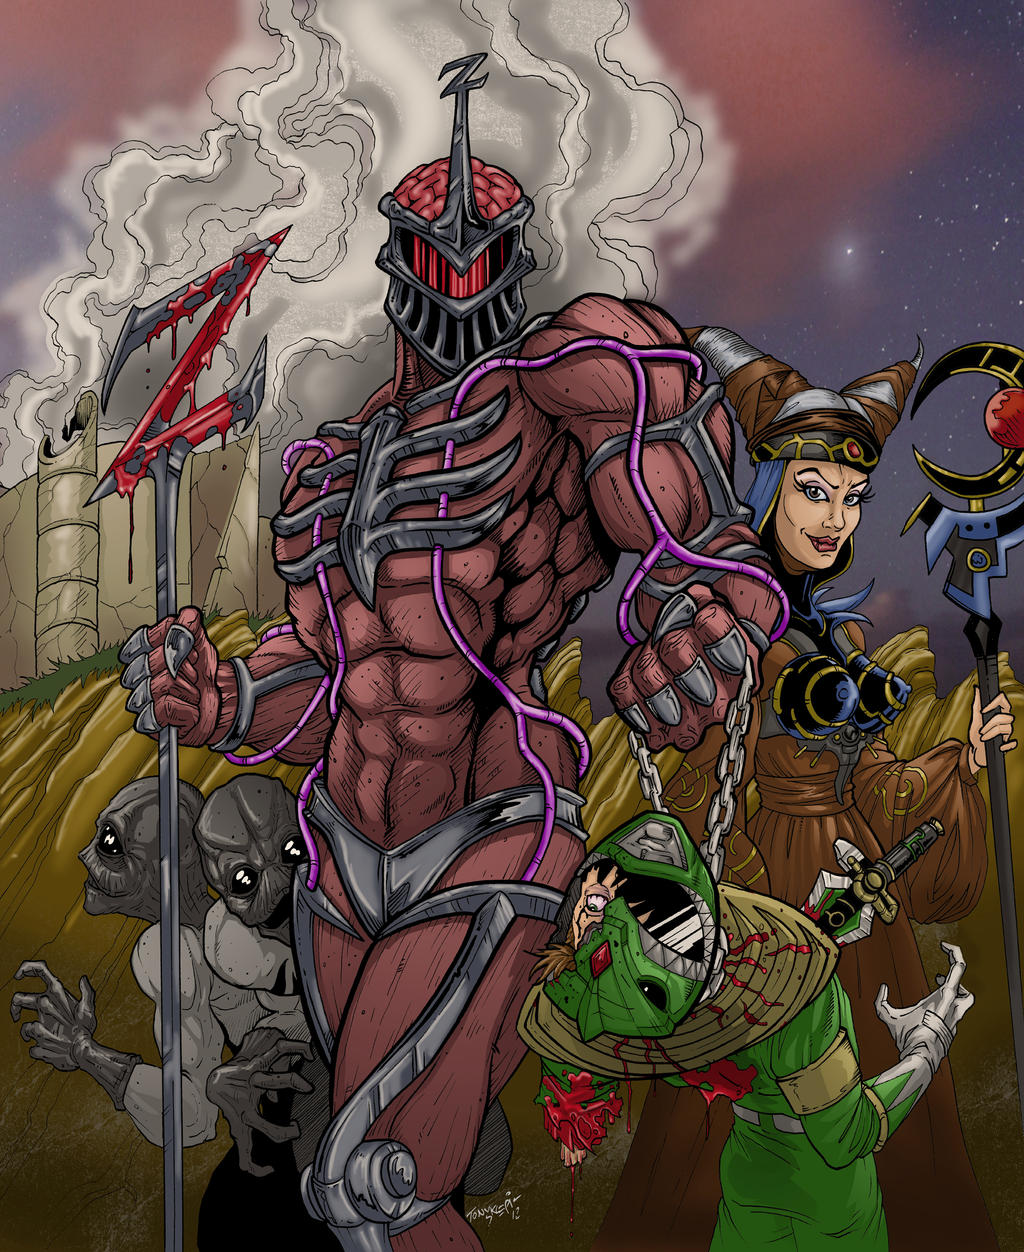 Mighty morphin power rangers season 2 episode 1 the mutiny part 1 this is the episode lord zedd appers and takes over